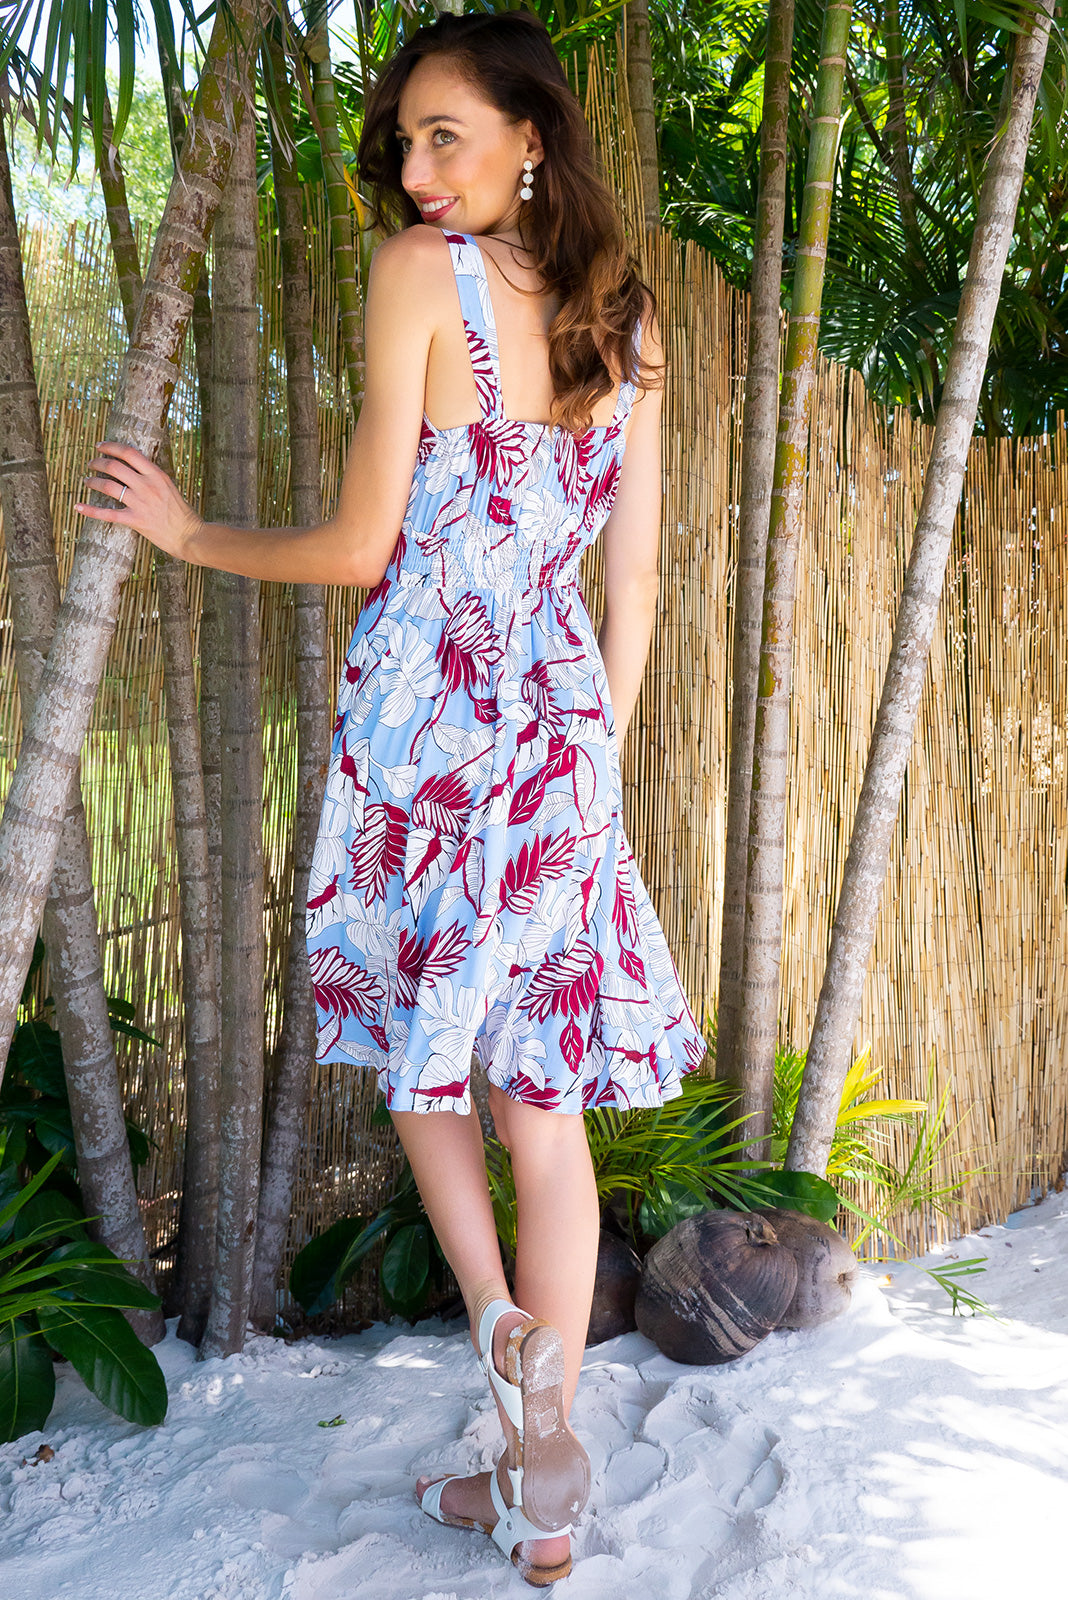 Little Lola Jungle Sky dress features a vintage inspired fitted basque waist and elasticated waist with a sleeveless design and deep v neck the fabric is a soft woven rayon in sky blue and dark red tropical leaf print